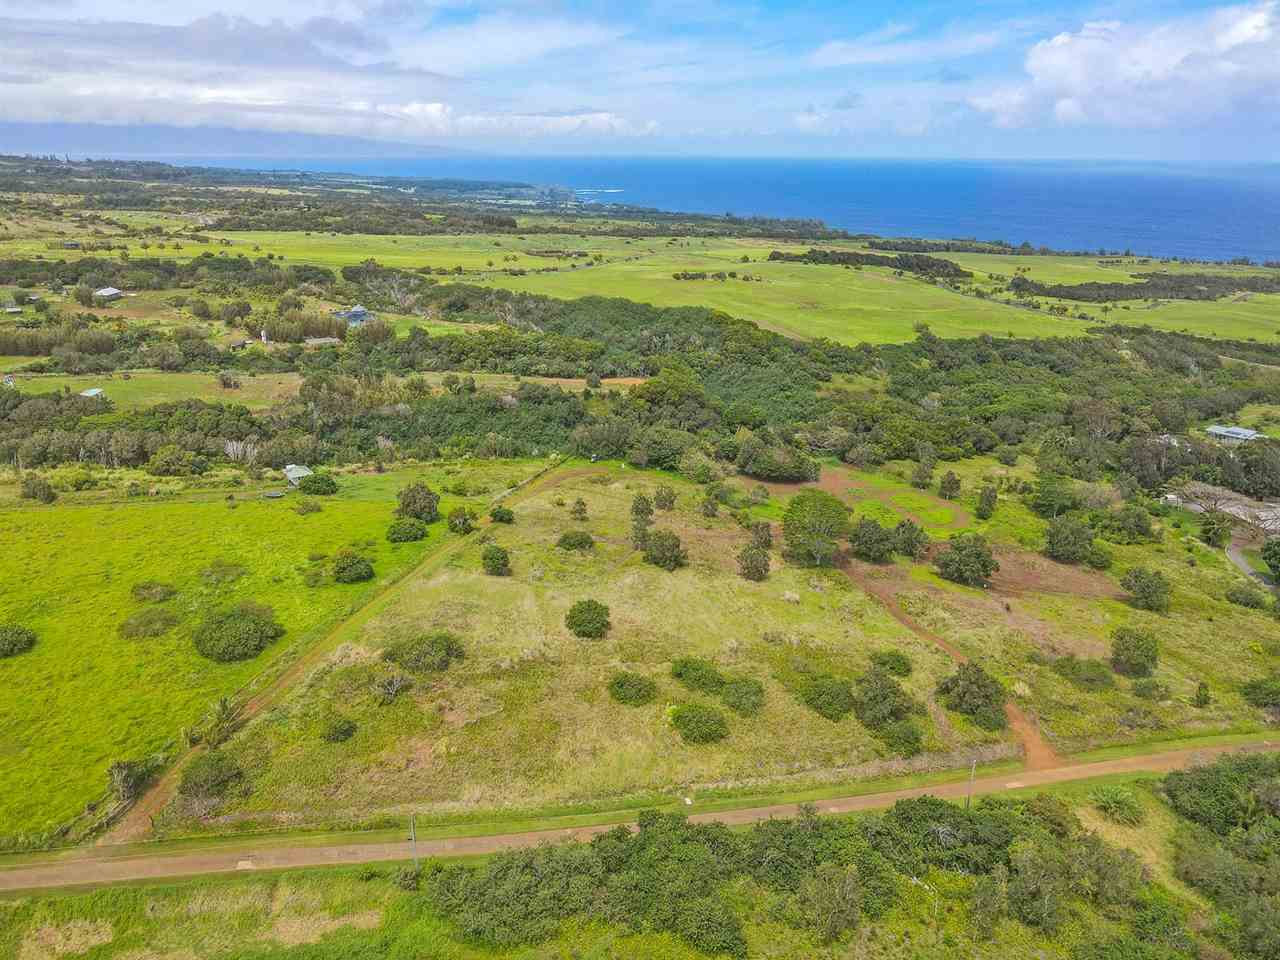 Manawai Pl Lot 3 Haiku, Hi 96708 vacant land - photo 18 of 19